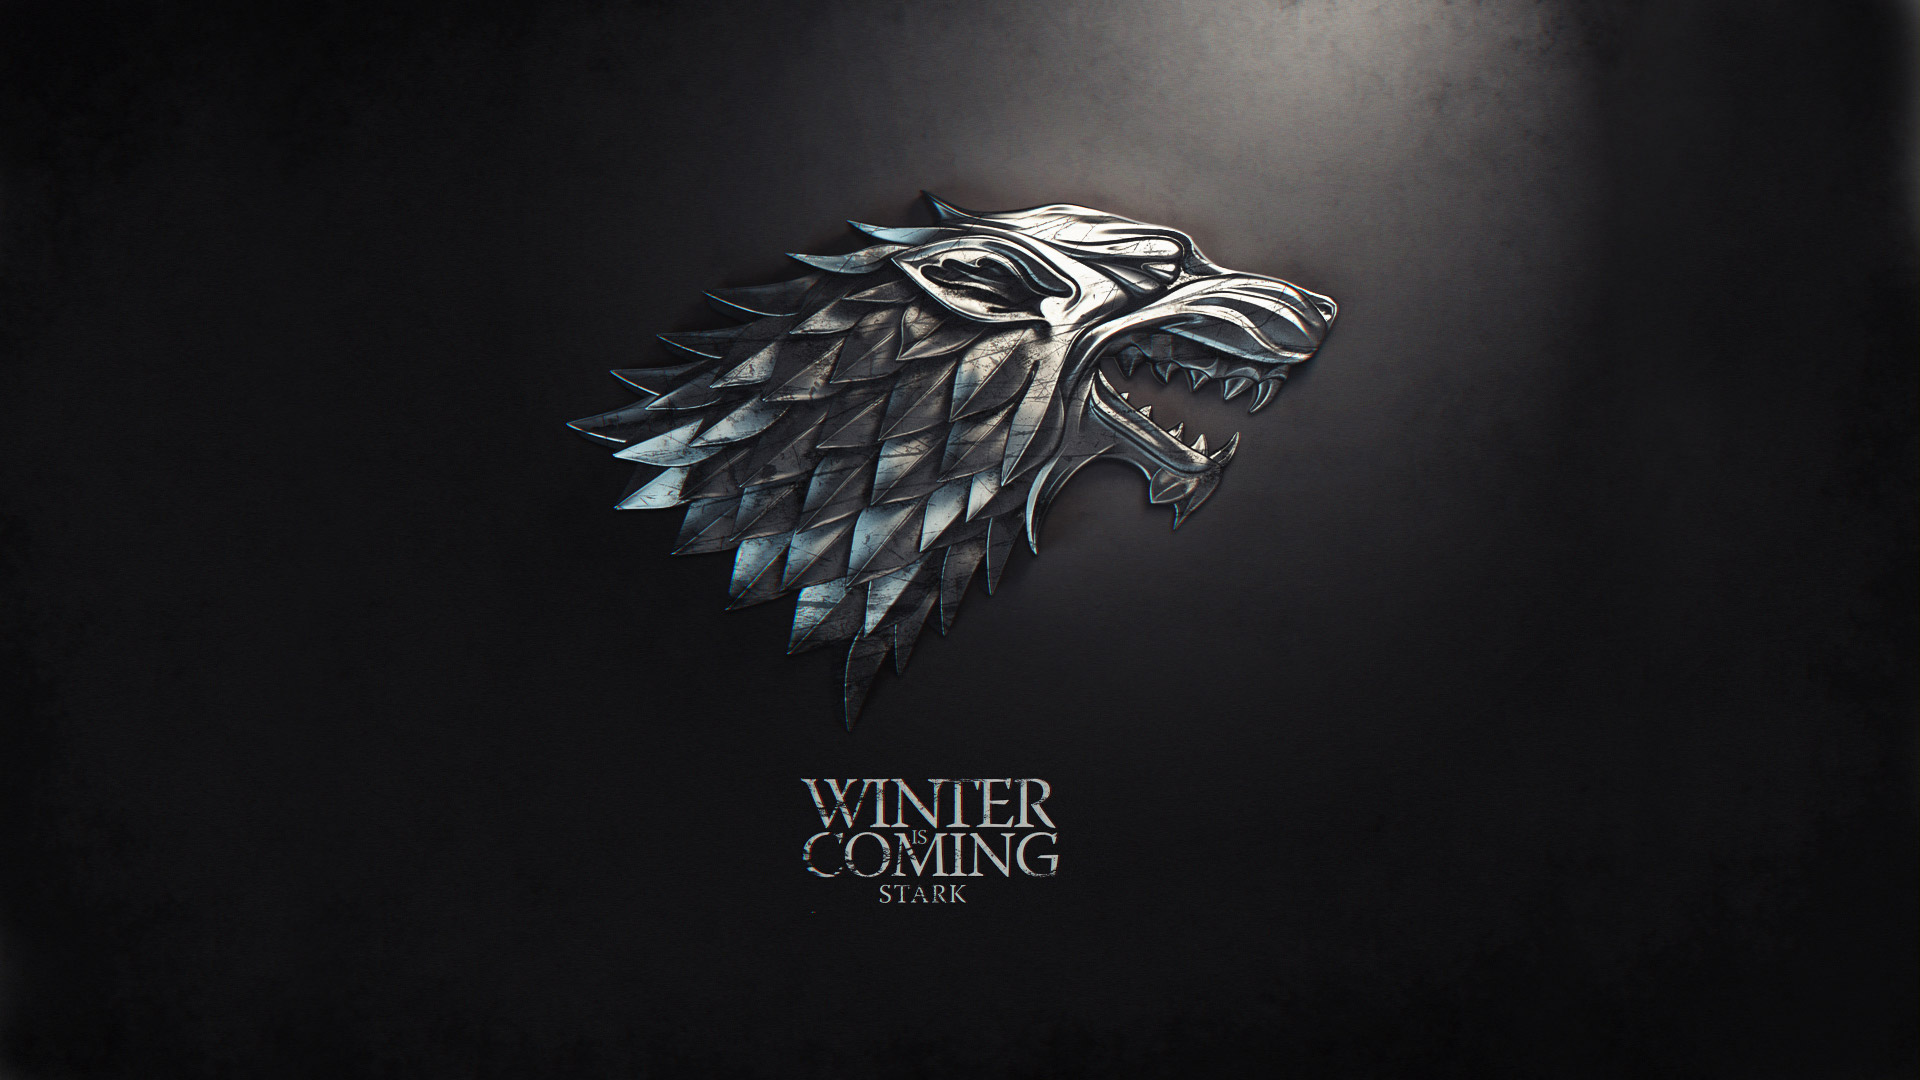 Stark-Game of Thrones Google Cover